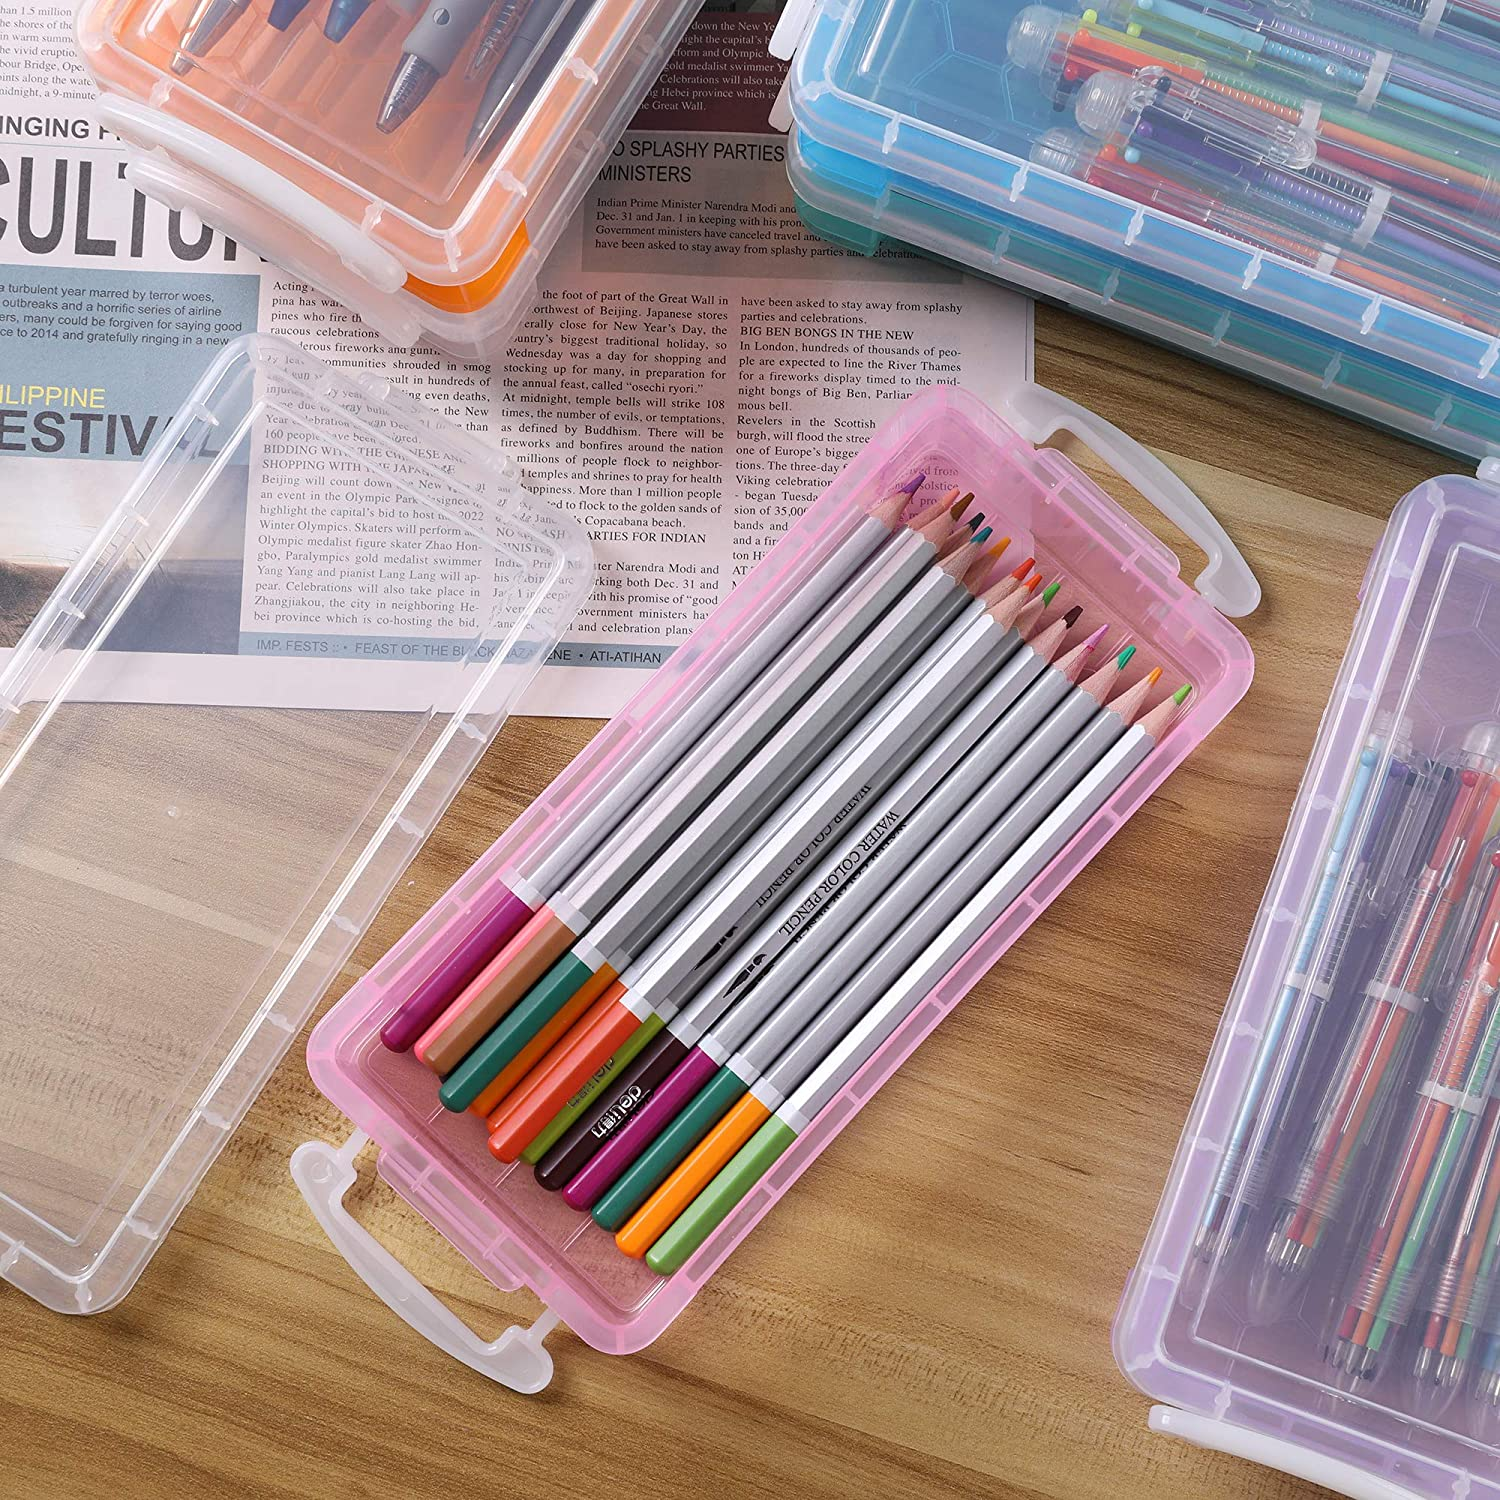 Blue+Pink+Green 6 Pack Storage Box Container Desktop Organizer Pencils Markers Crayons Pens Drawing Tools Boxes for Office School Home Stackable Large Pencil Case